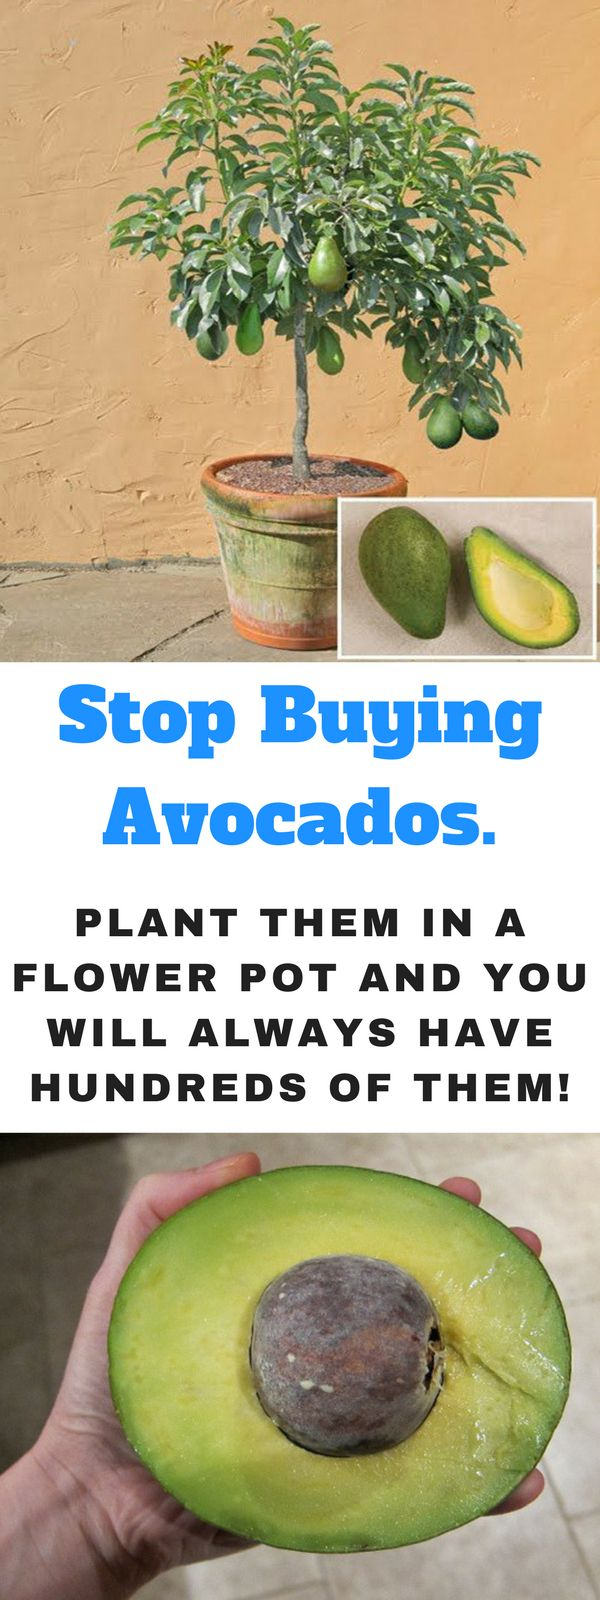 Avocados are considered one of the healthiest and tastiest fruits on the planet. Its rich, creamy inside is filled with nutrition and flavor and growing your own avocados is a fun adventure for the gardener. Avocado (Persea americana) is a native fruiting tree of Mexico and Central America. Avocado fruit varies in weight from 4 …